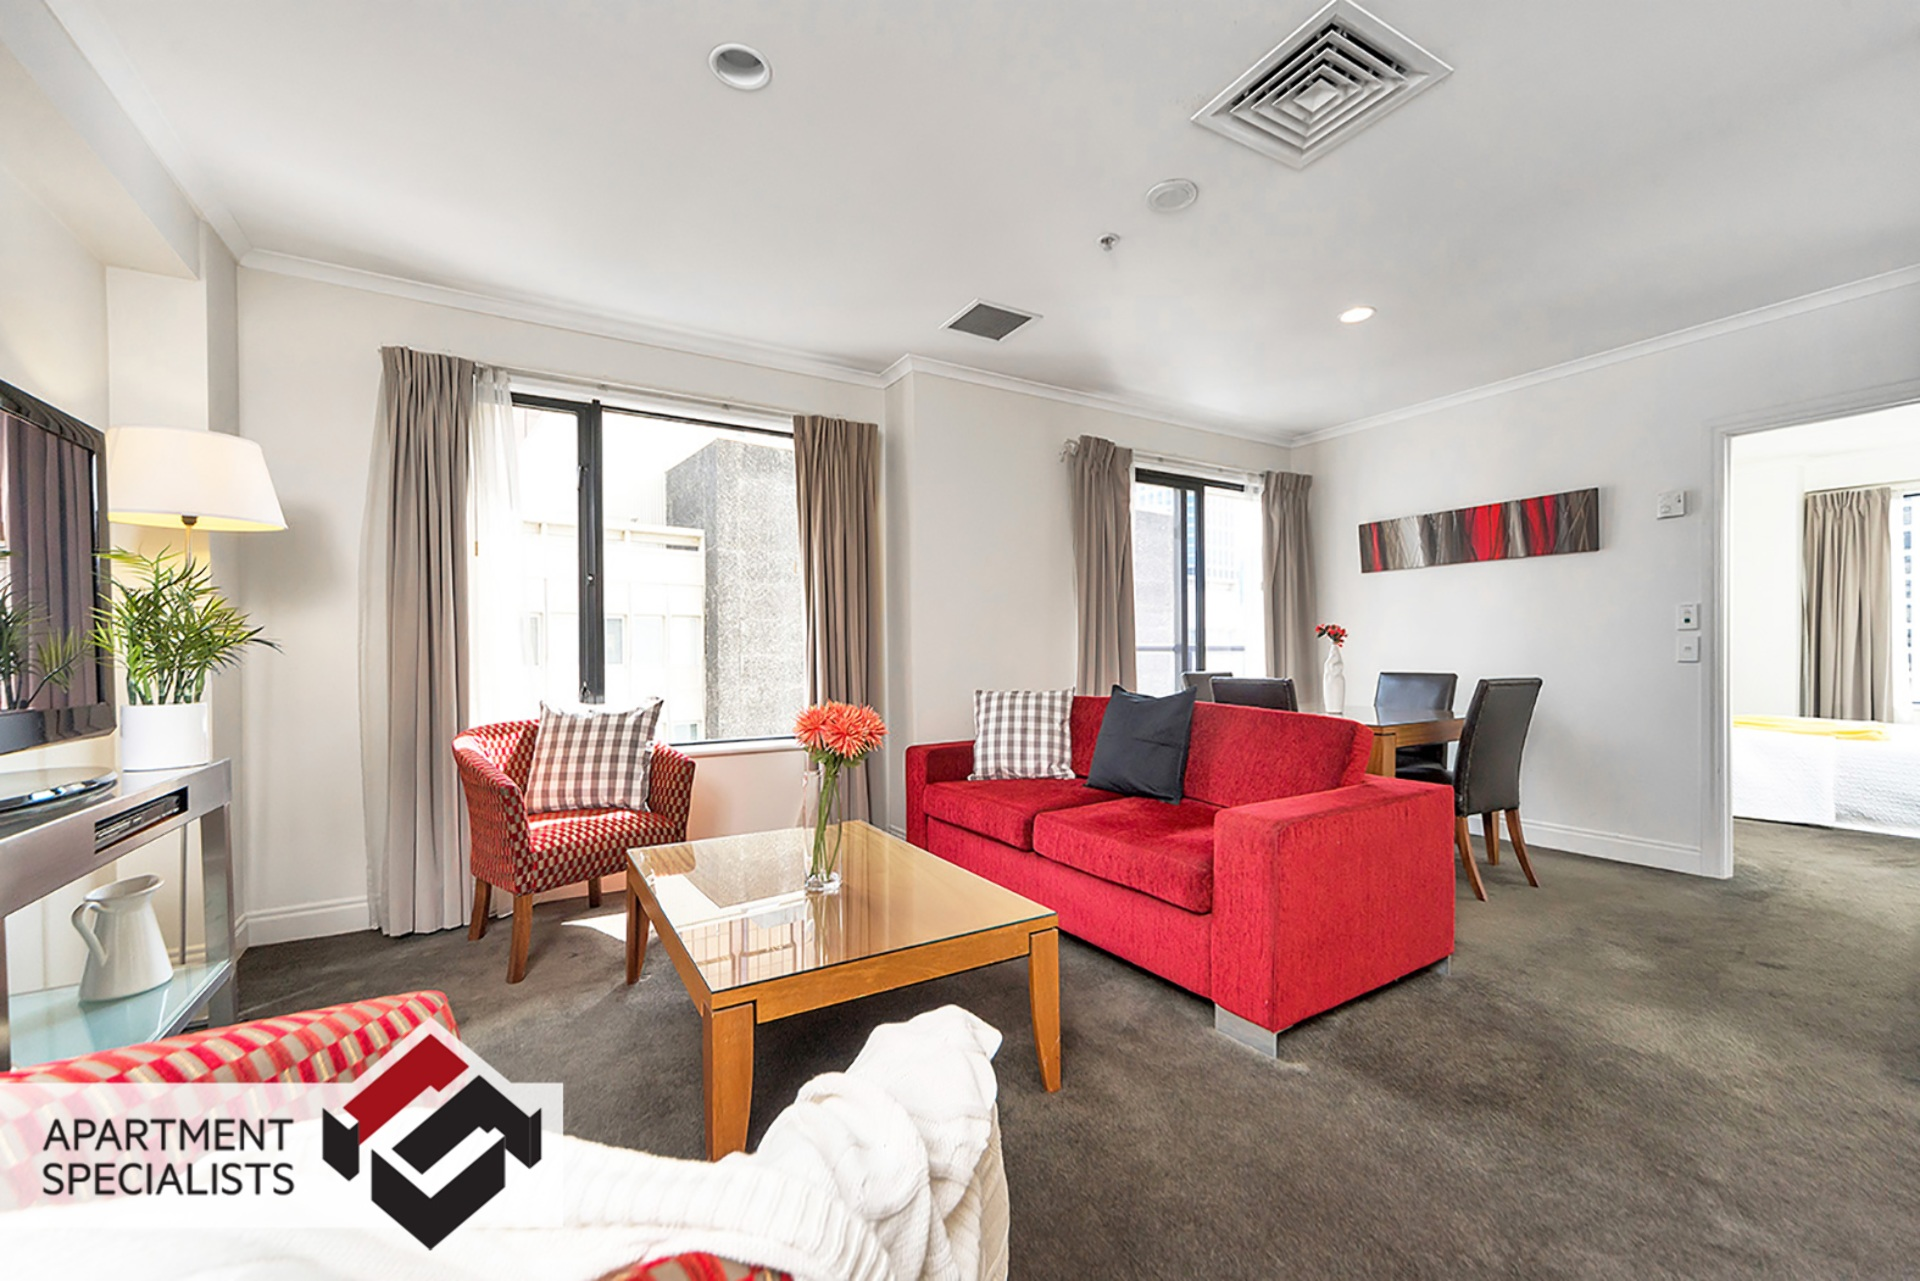 0 | 171 CBD, City Centre | Apartment Specialists